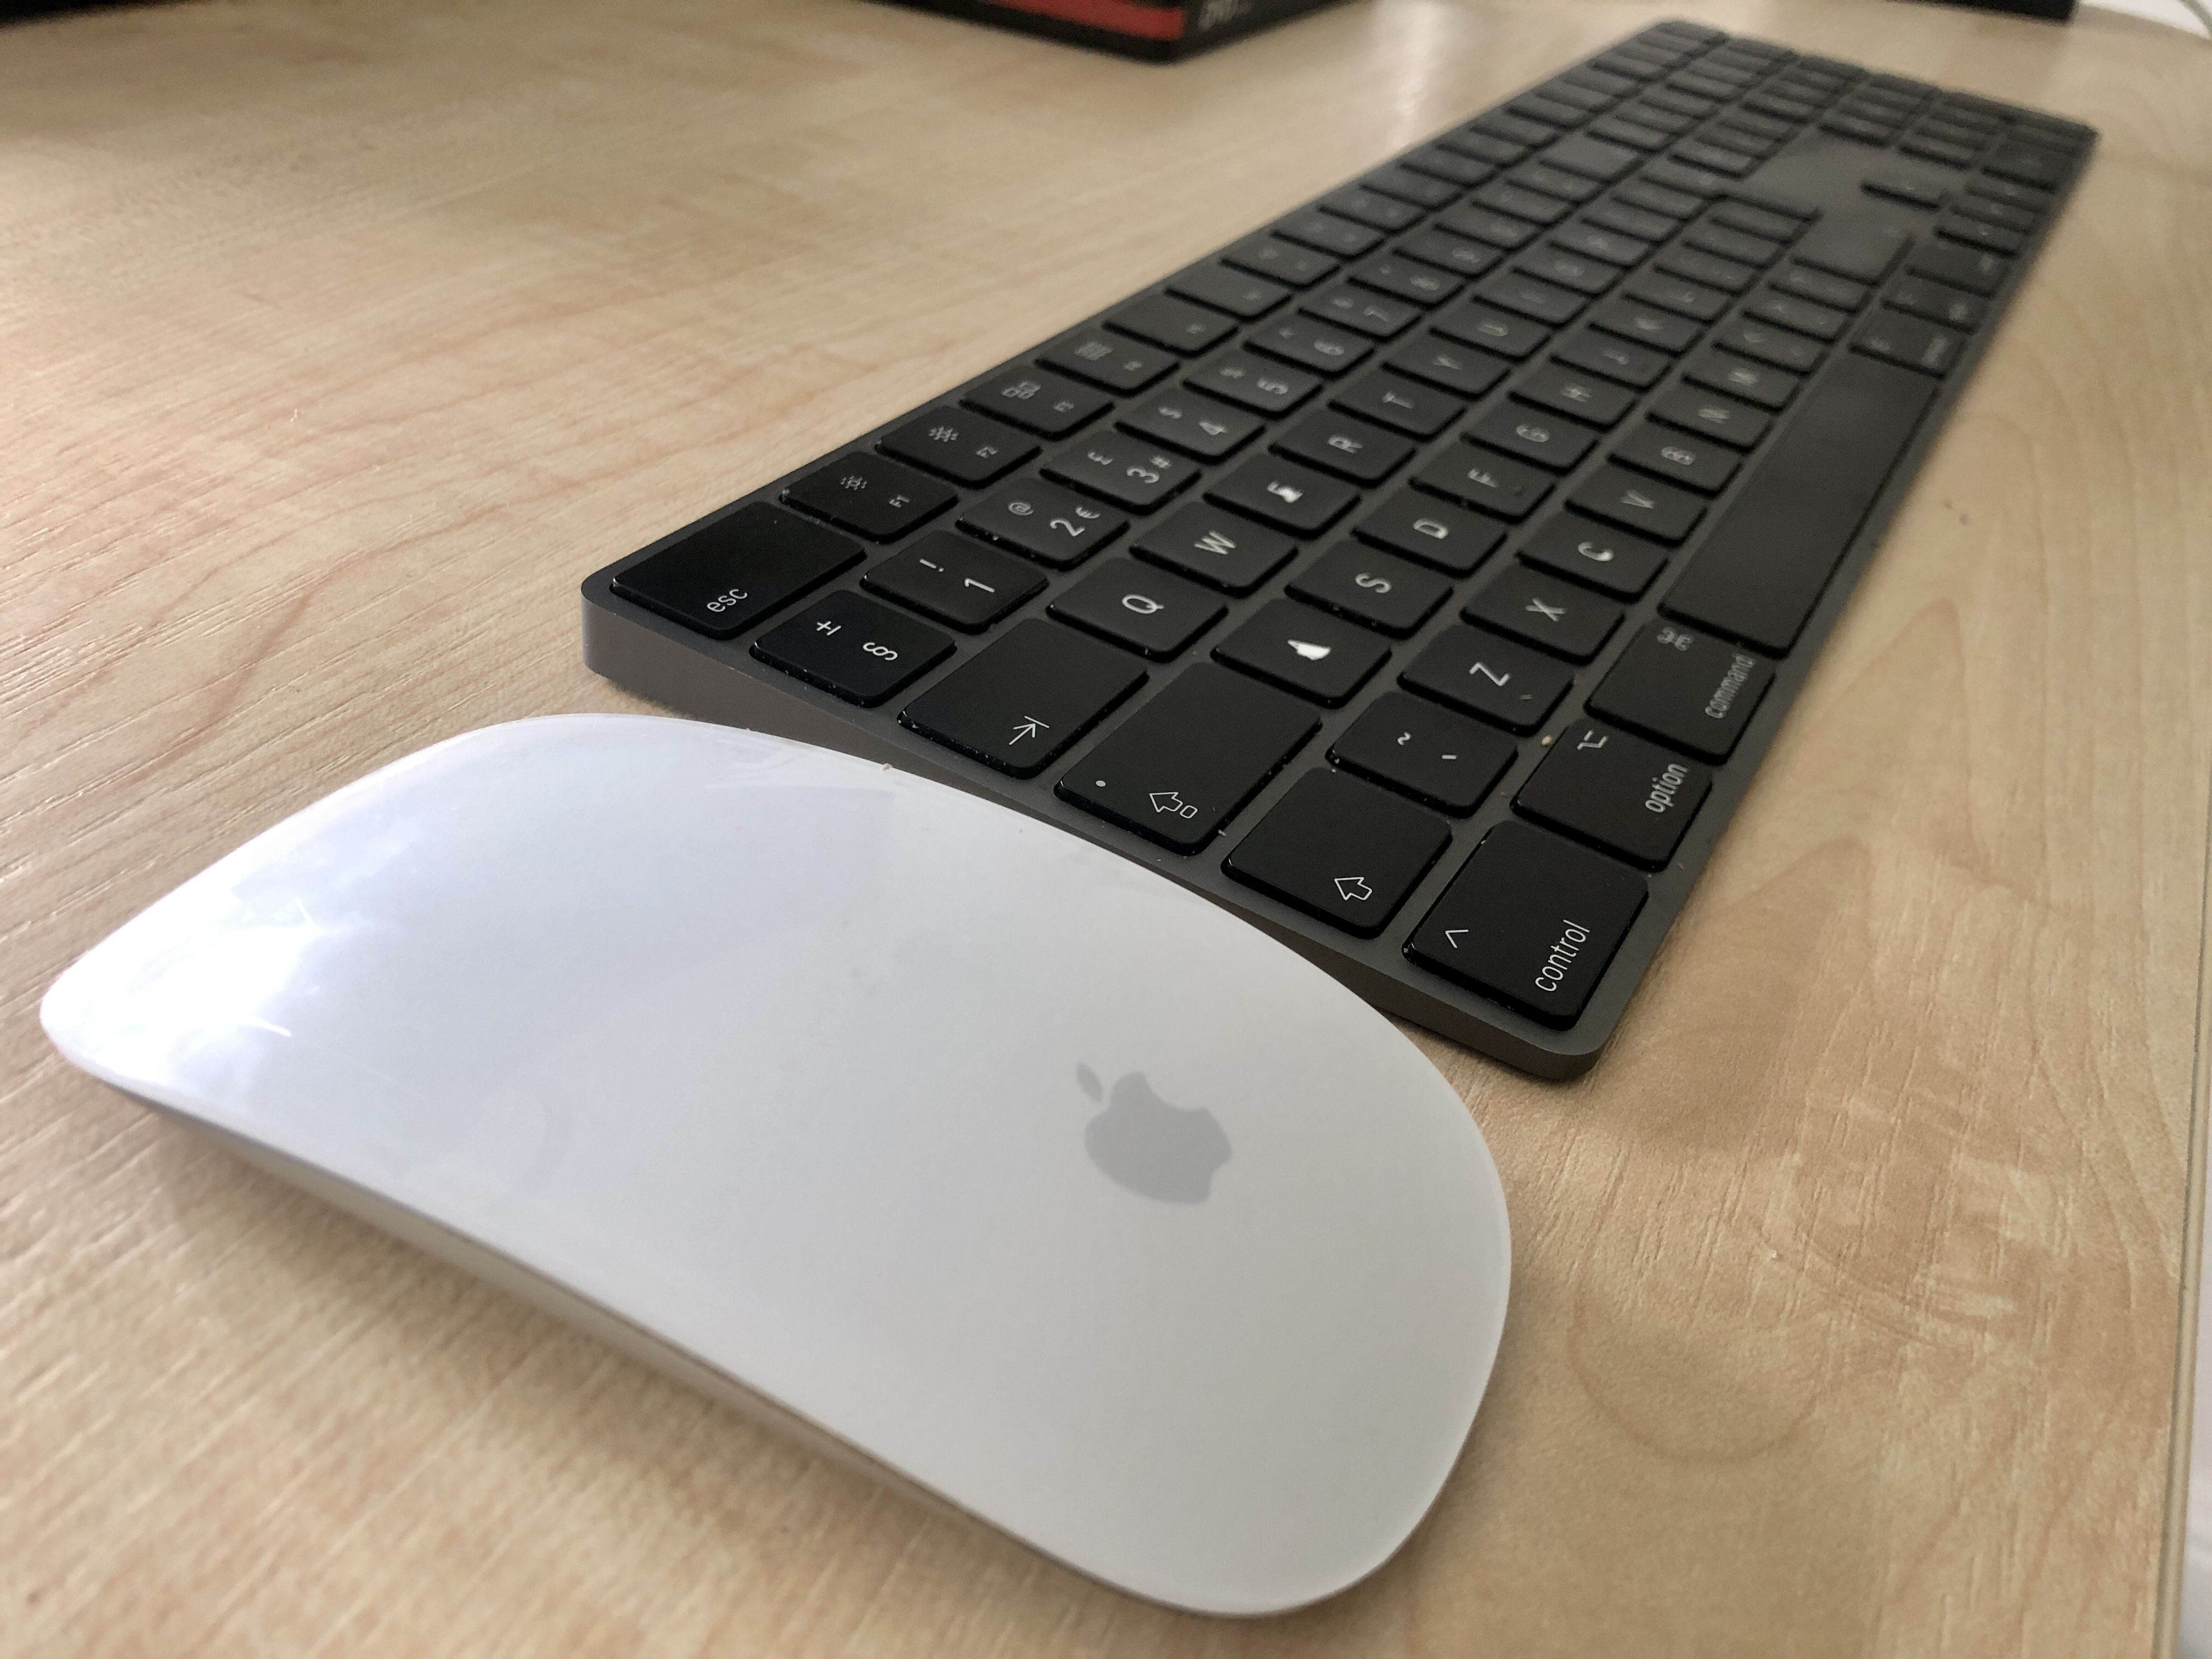 Photo of a white Apple Magic Mouse next to a black Apple keyboard, on a desk